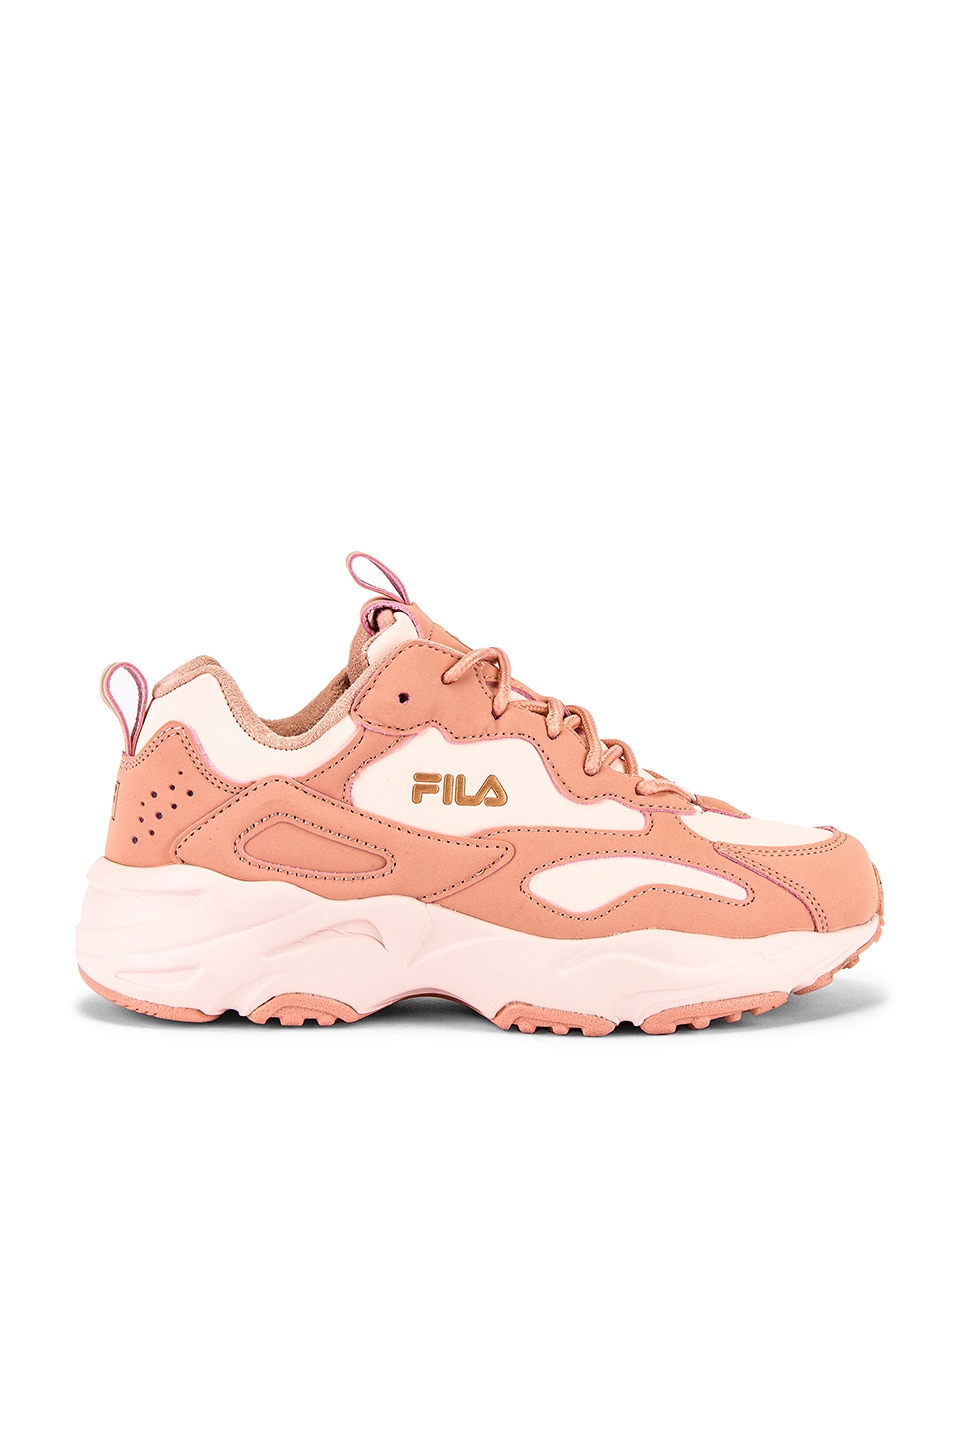 Fila Ray Tracer in Dusty Pink, Spanish Villa & Silver Pink